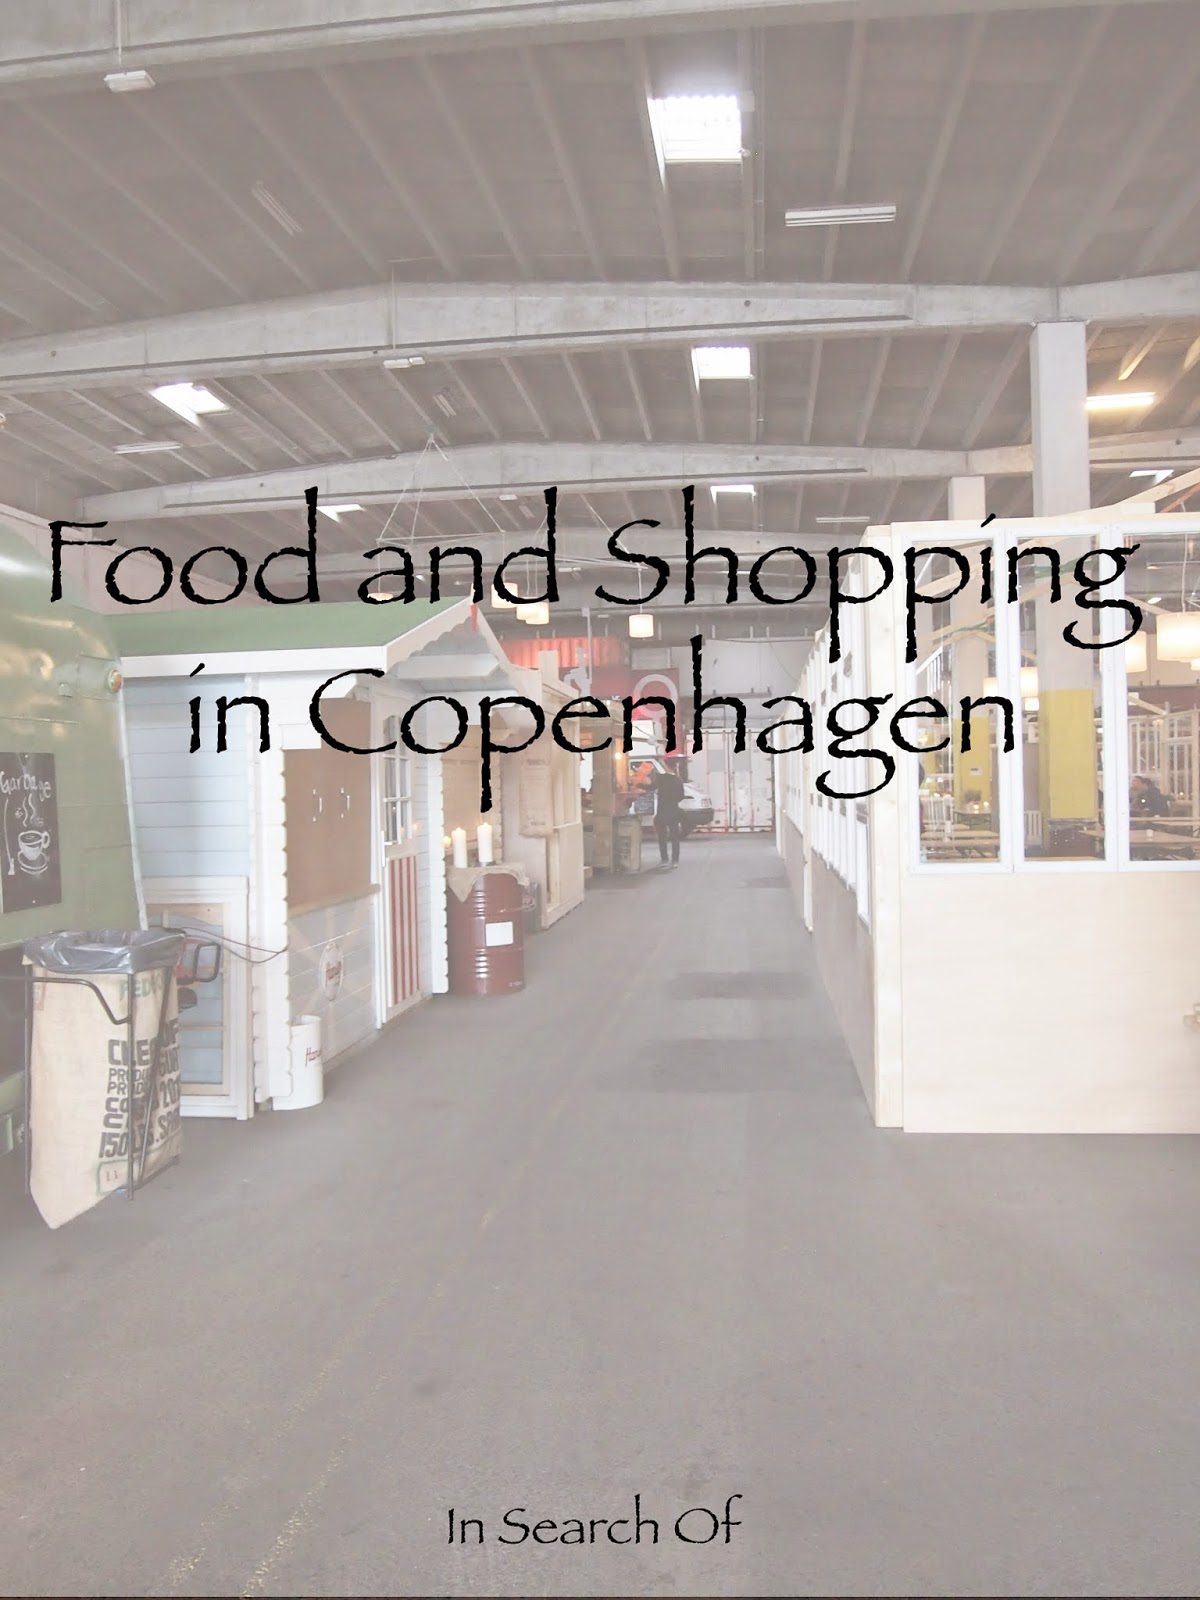 a blog post about food and shopping in Copenhagen